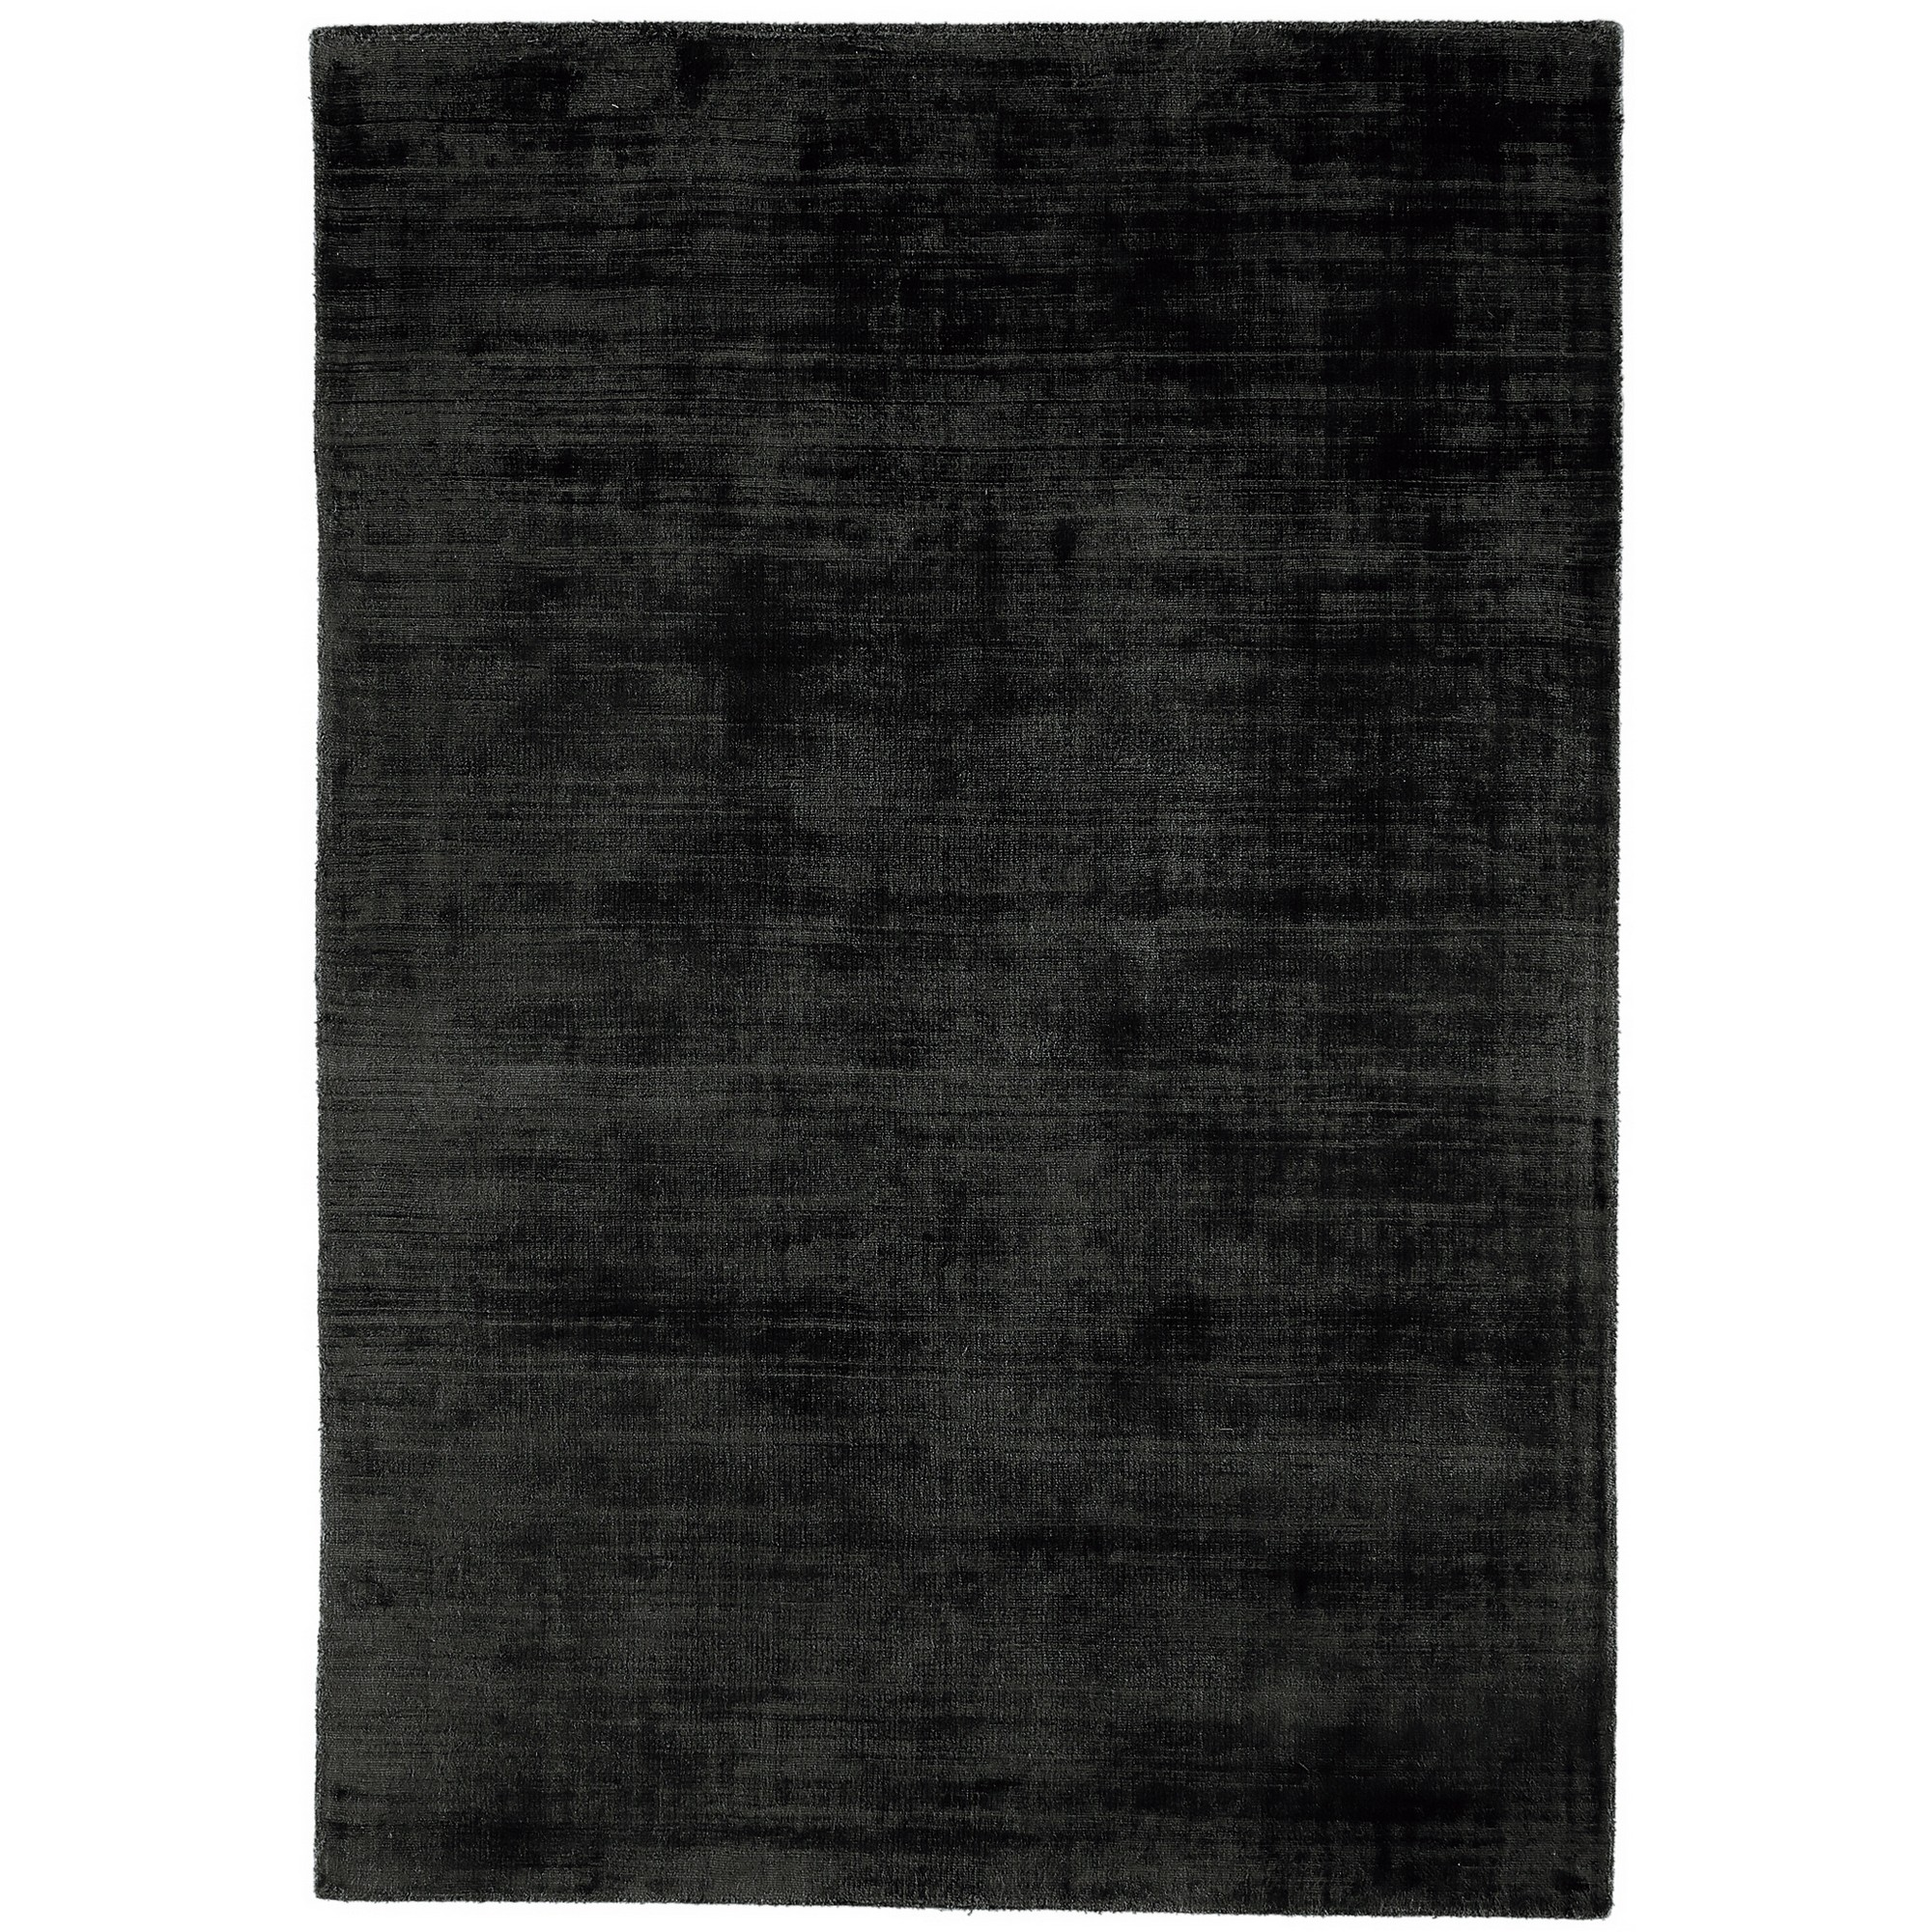 Blade Plain Rugs in Charcoal